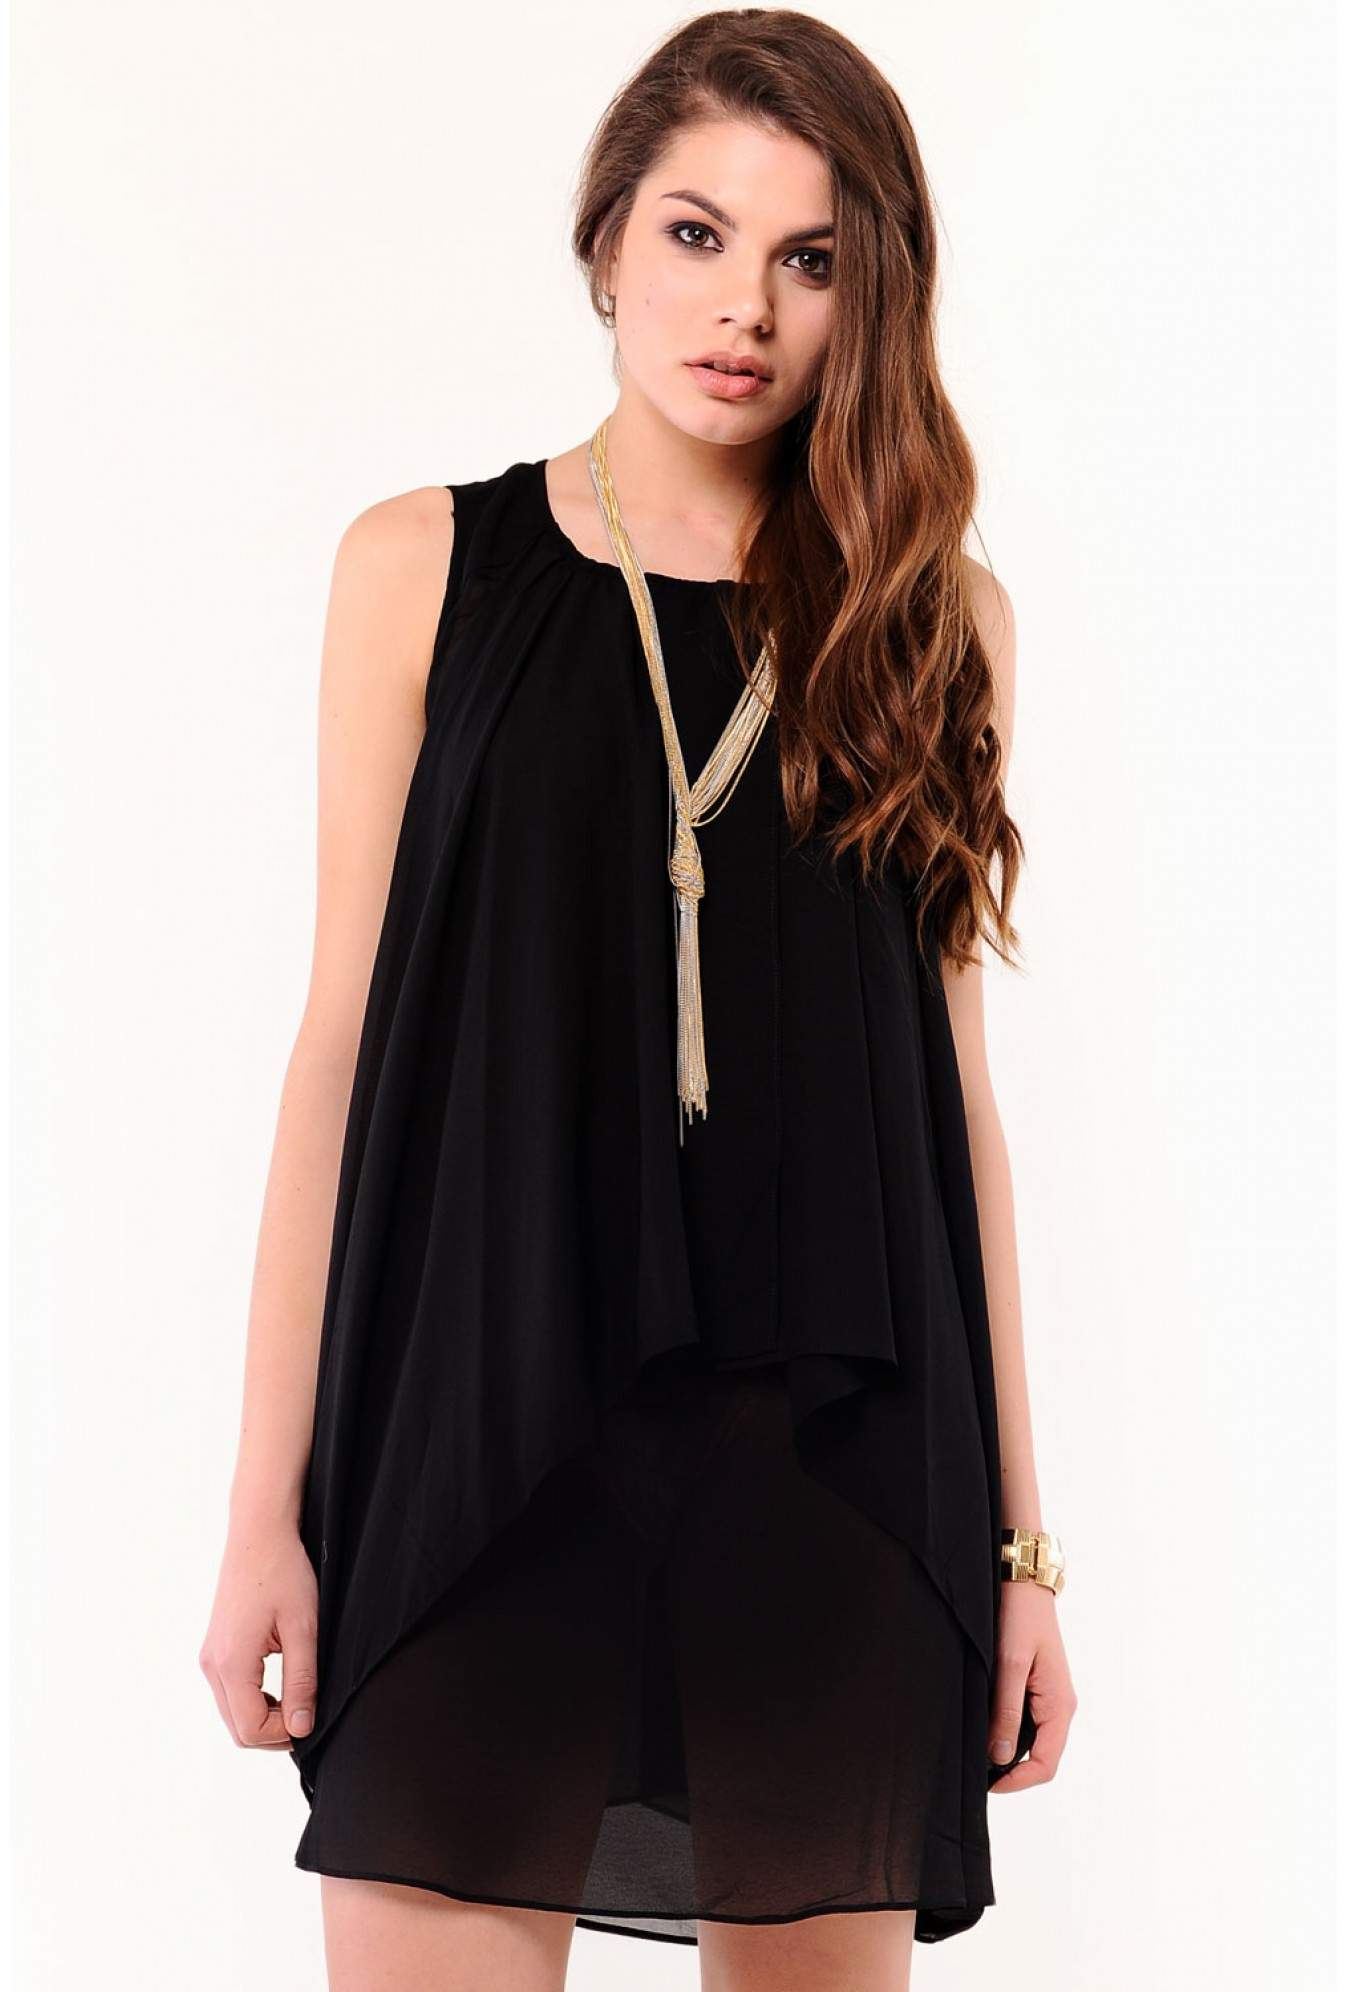 Black Asymmetric Chiffon Dress